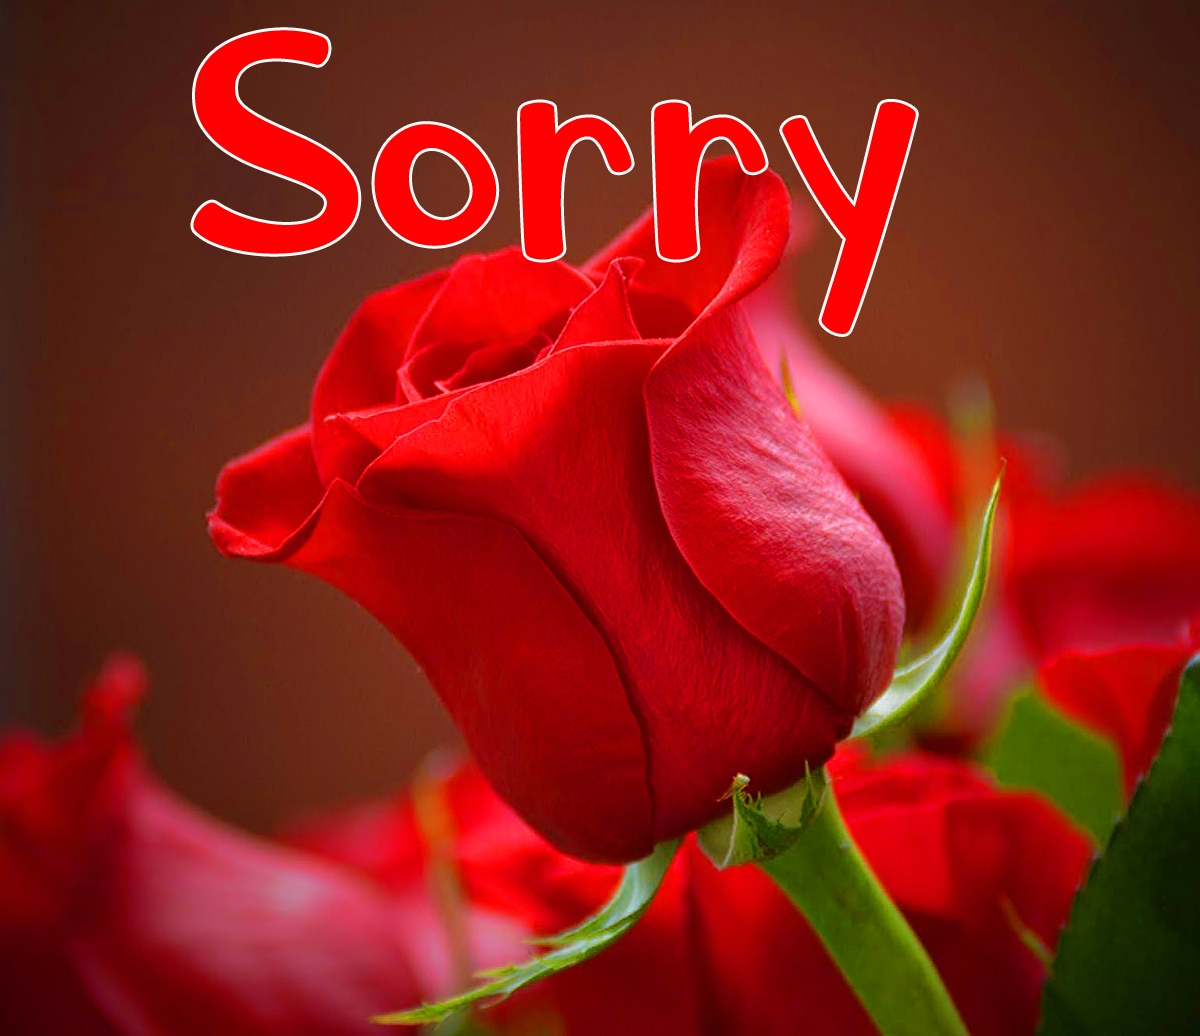 I am Sorry Images Pics Free Download Latest